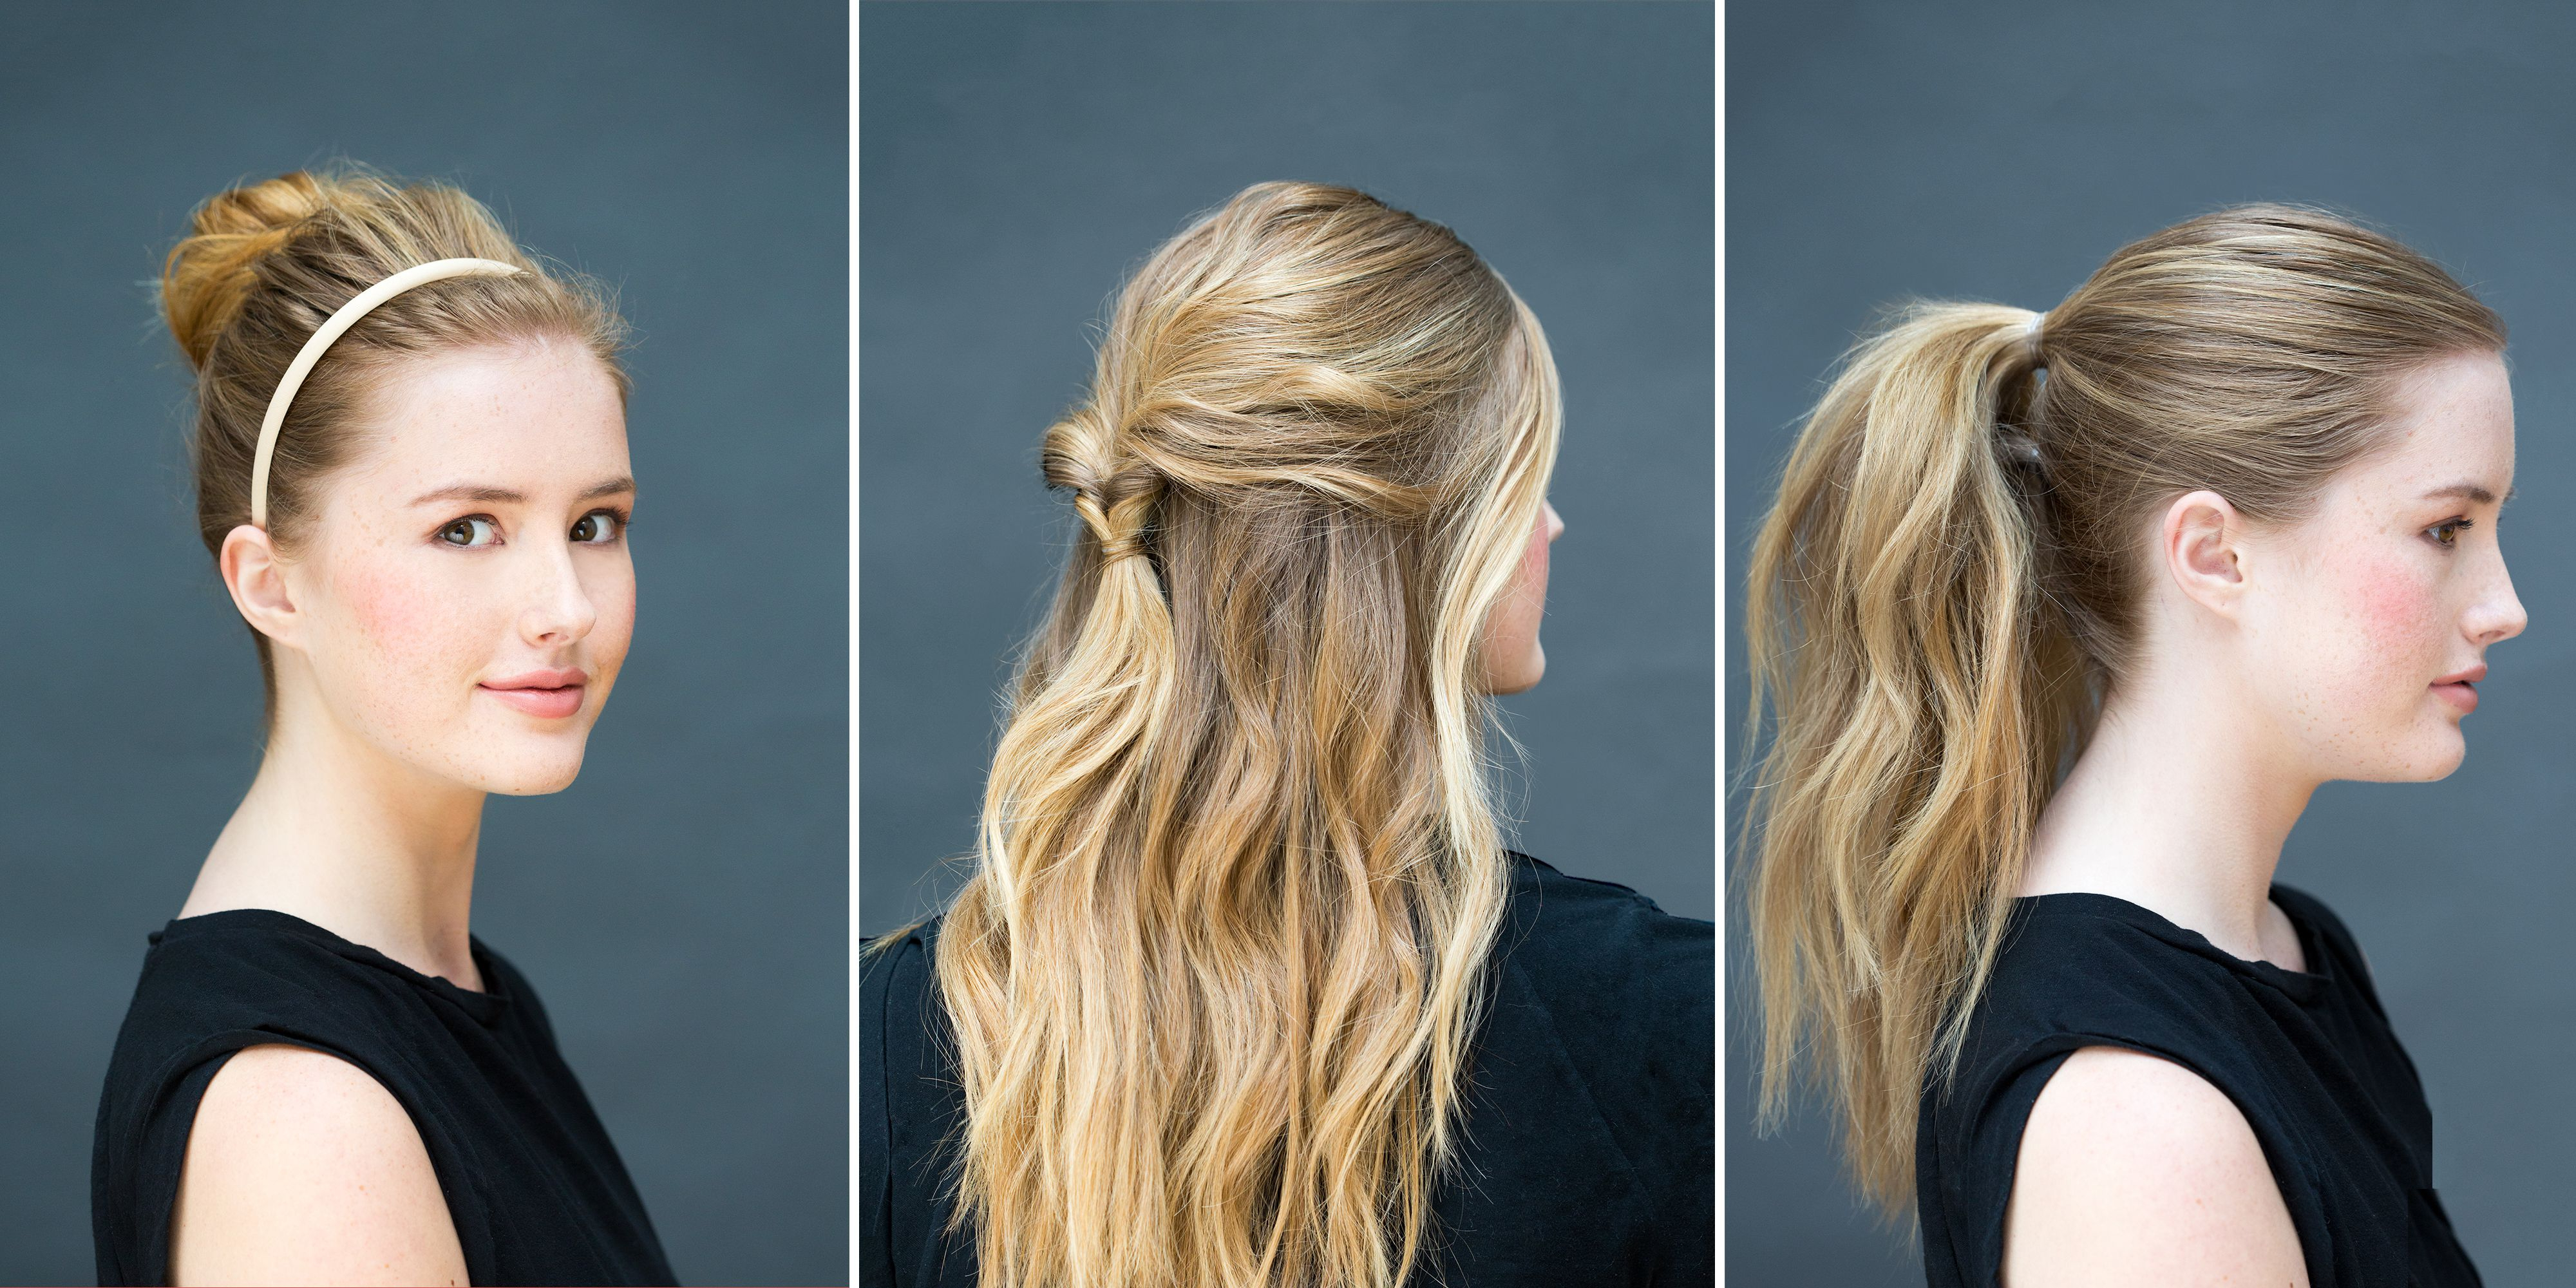 10 Easy Hairstyles You Can Do In 10 Seconds – Diy Hairstyles Regarding Most Up To Date Medium Hairstyles For Work (View 2 of 20)